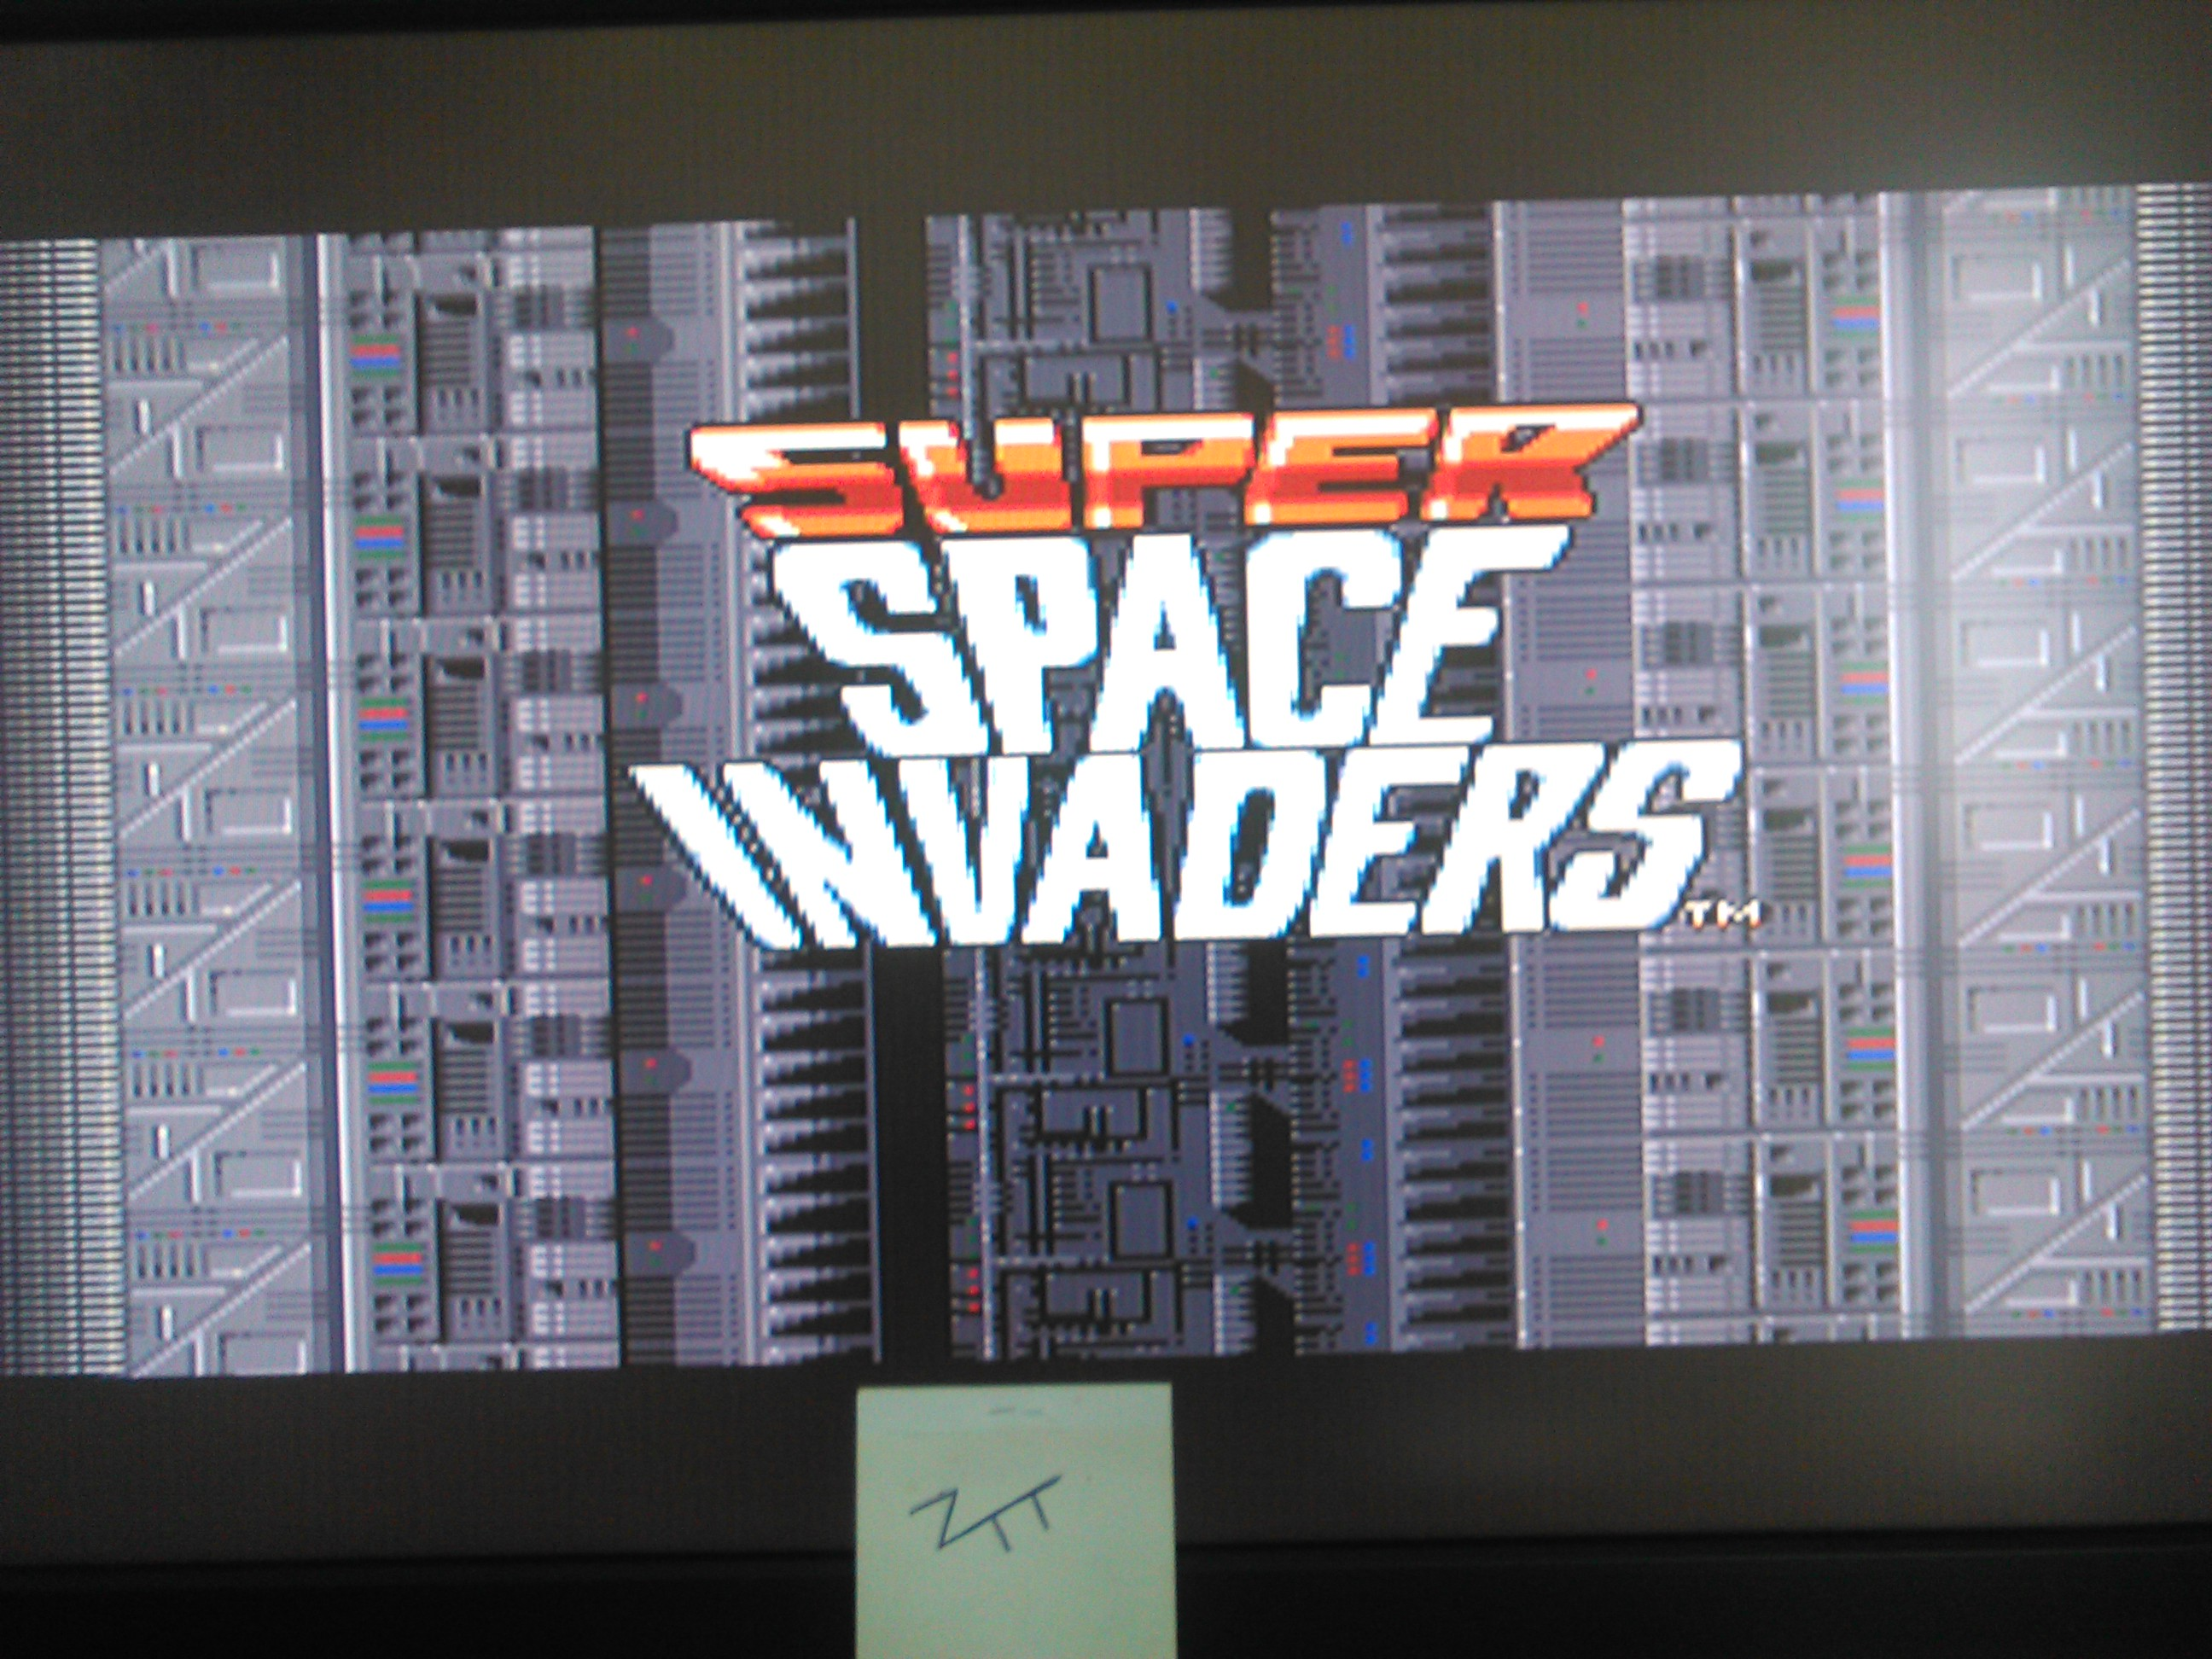 Frankie: Super Space Invaders [Normal] (Amiga) 81,360 points on 2016-11-03 11:53:17